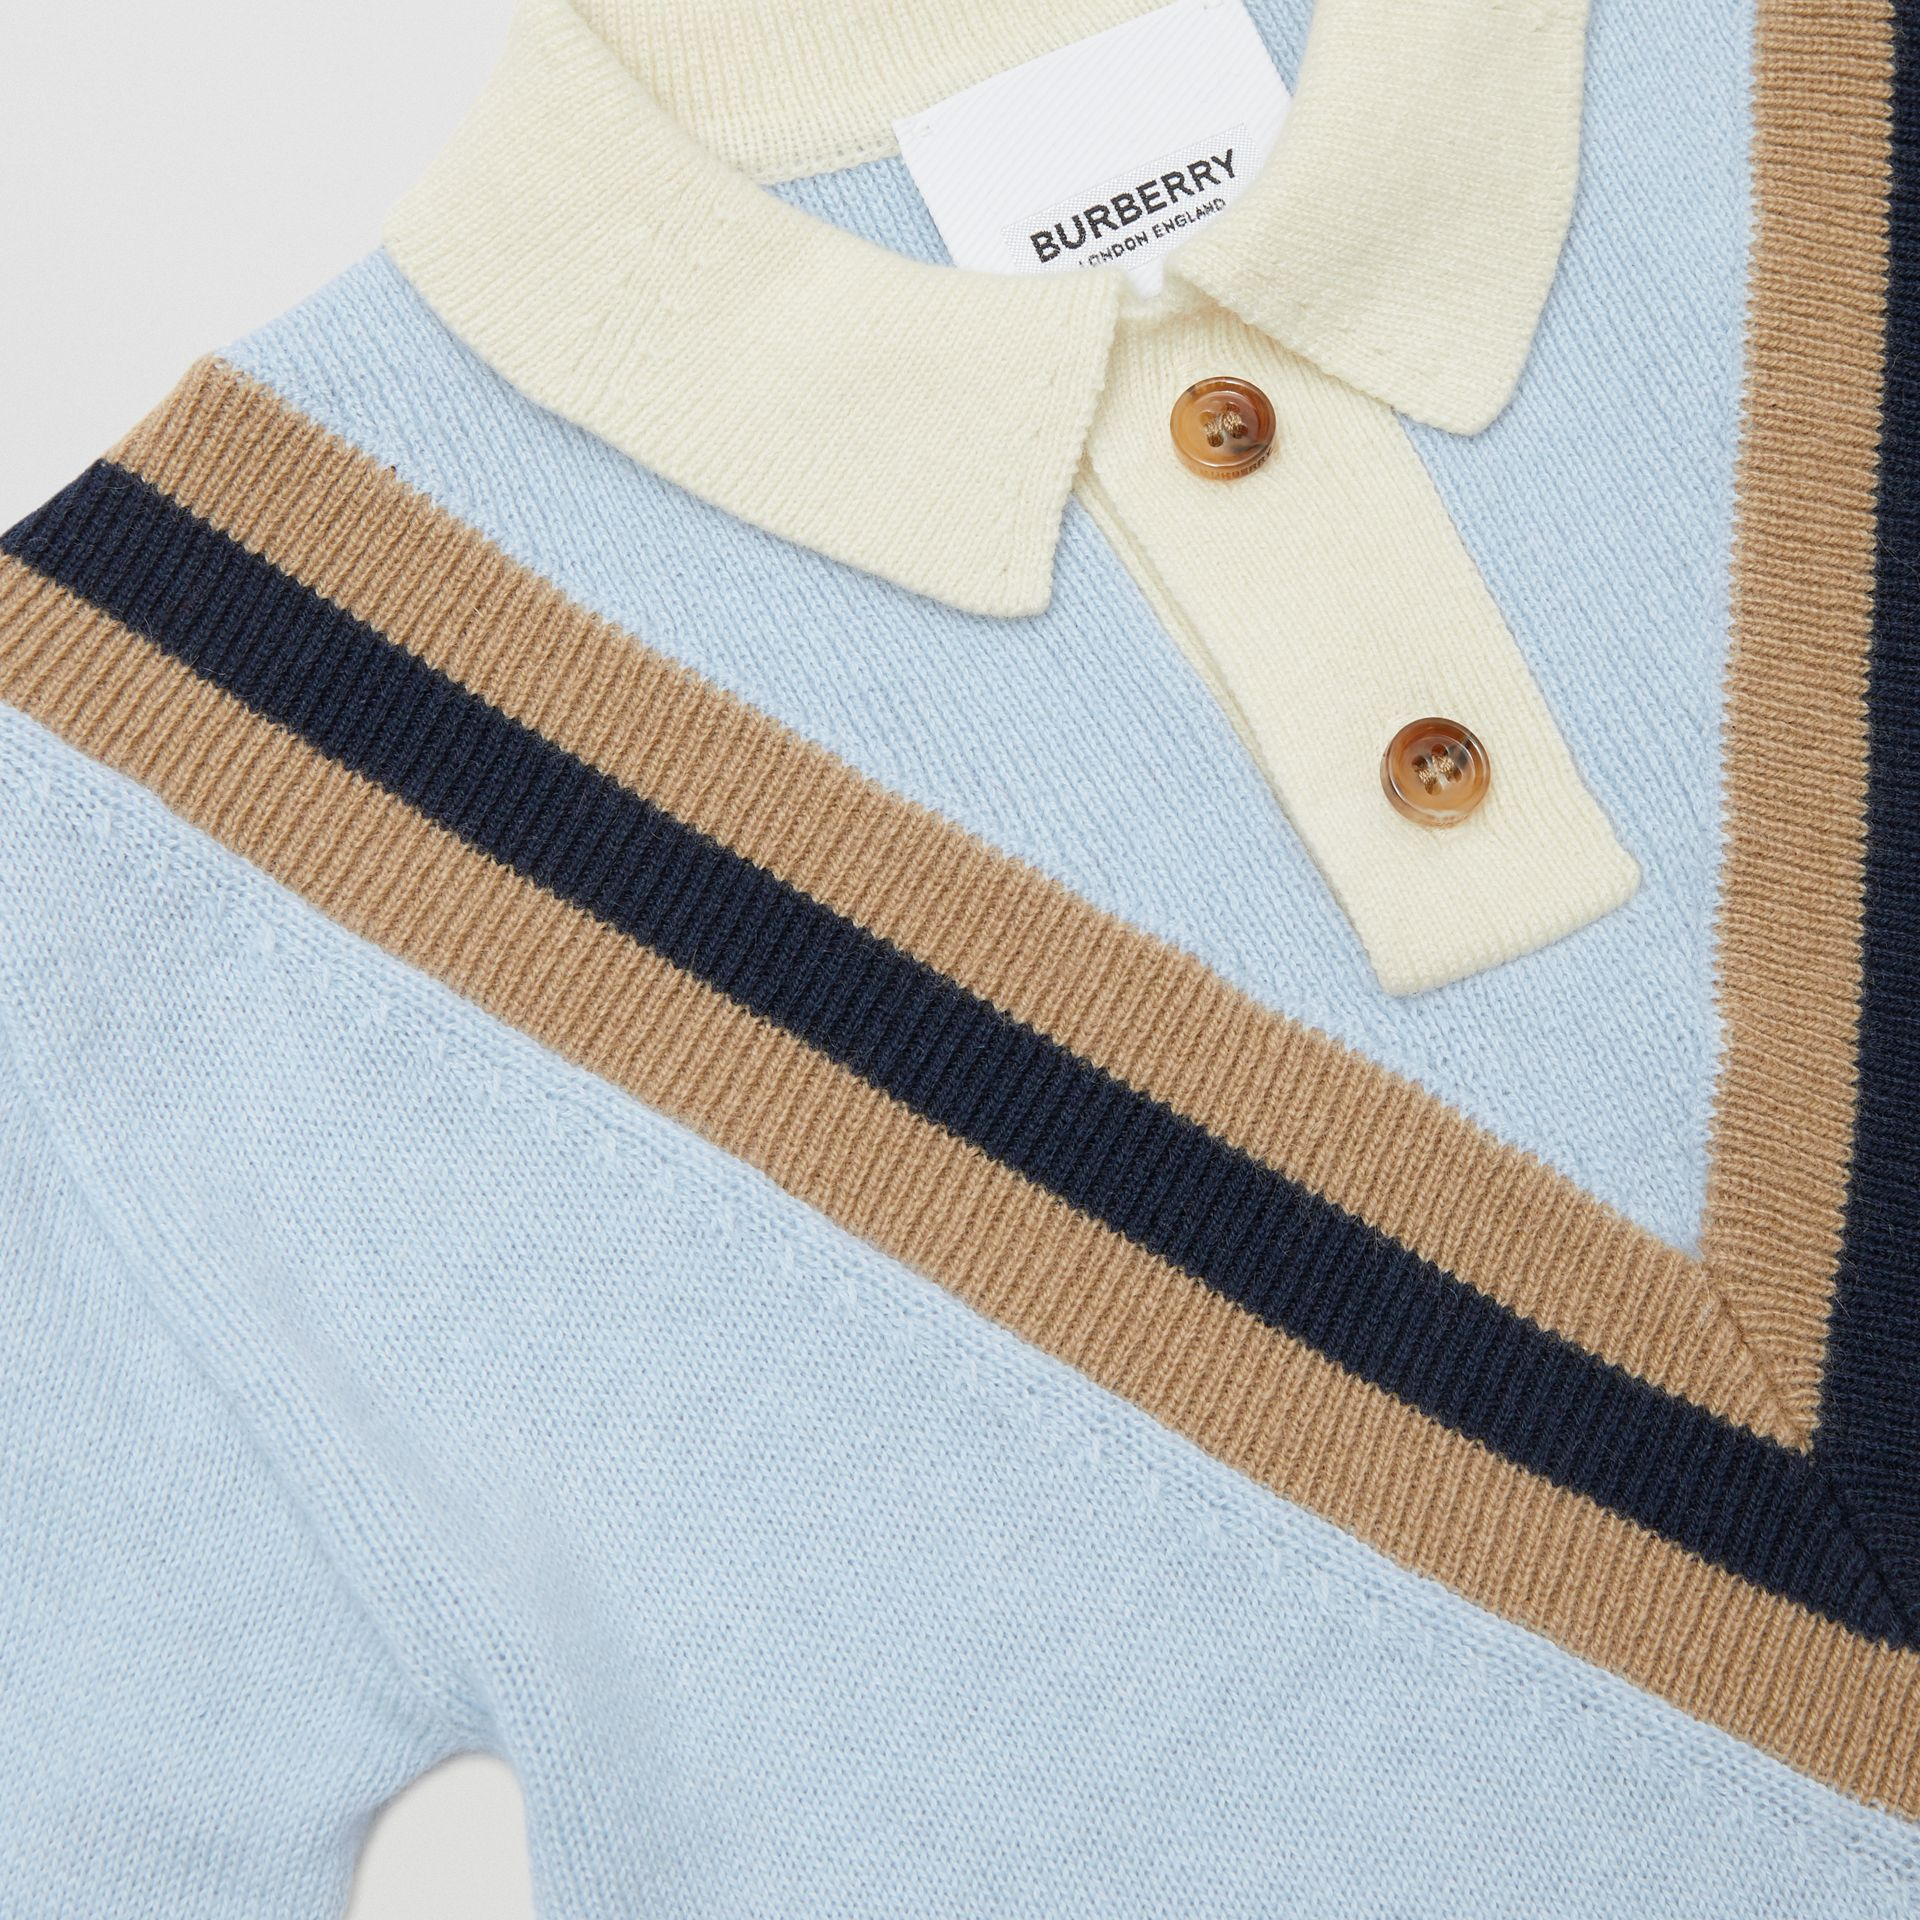 Long-sleeve Knit Cashmere Cotton Polo Shirt in Light Blue - Children | Burberry - gallery image 1